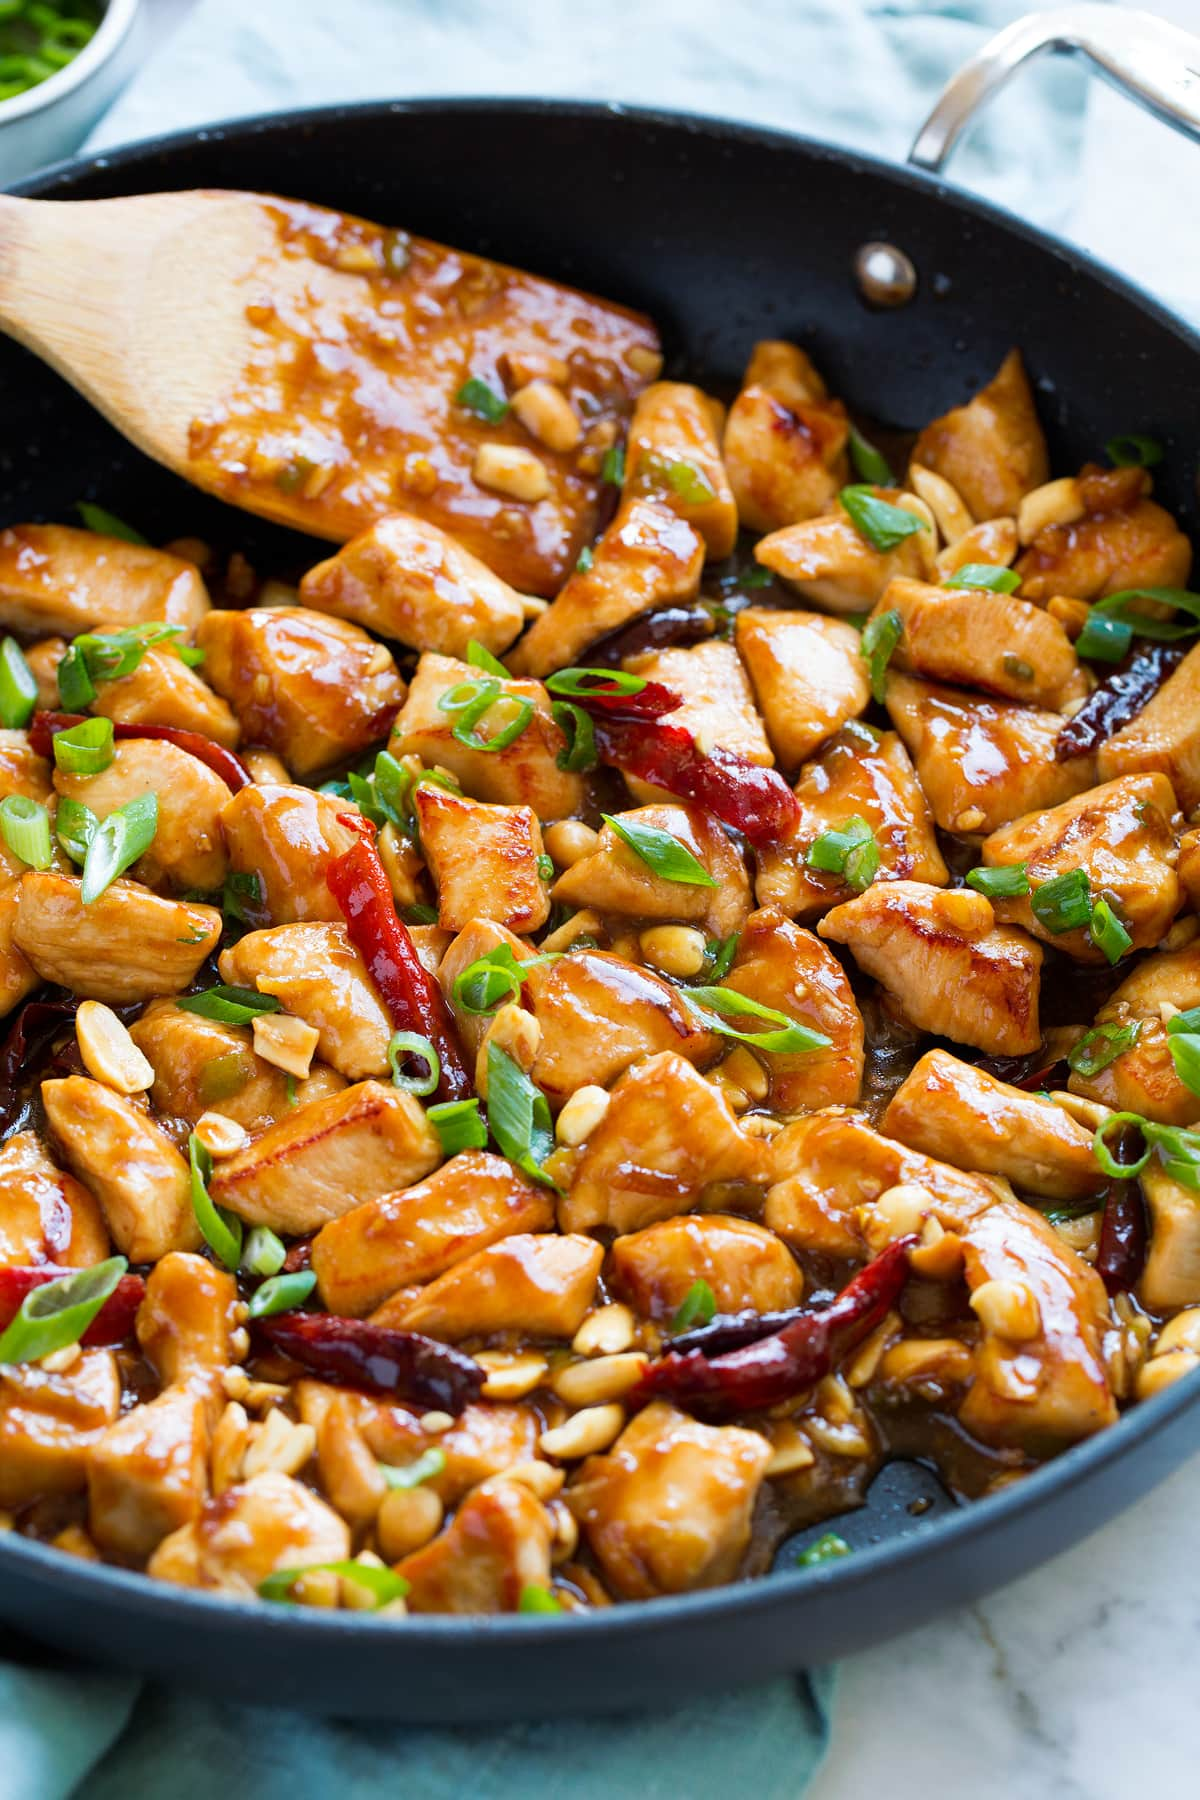 Close up image of Kung Pao chicken in a large skillet shown from a side angle.